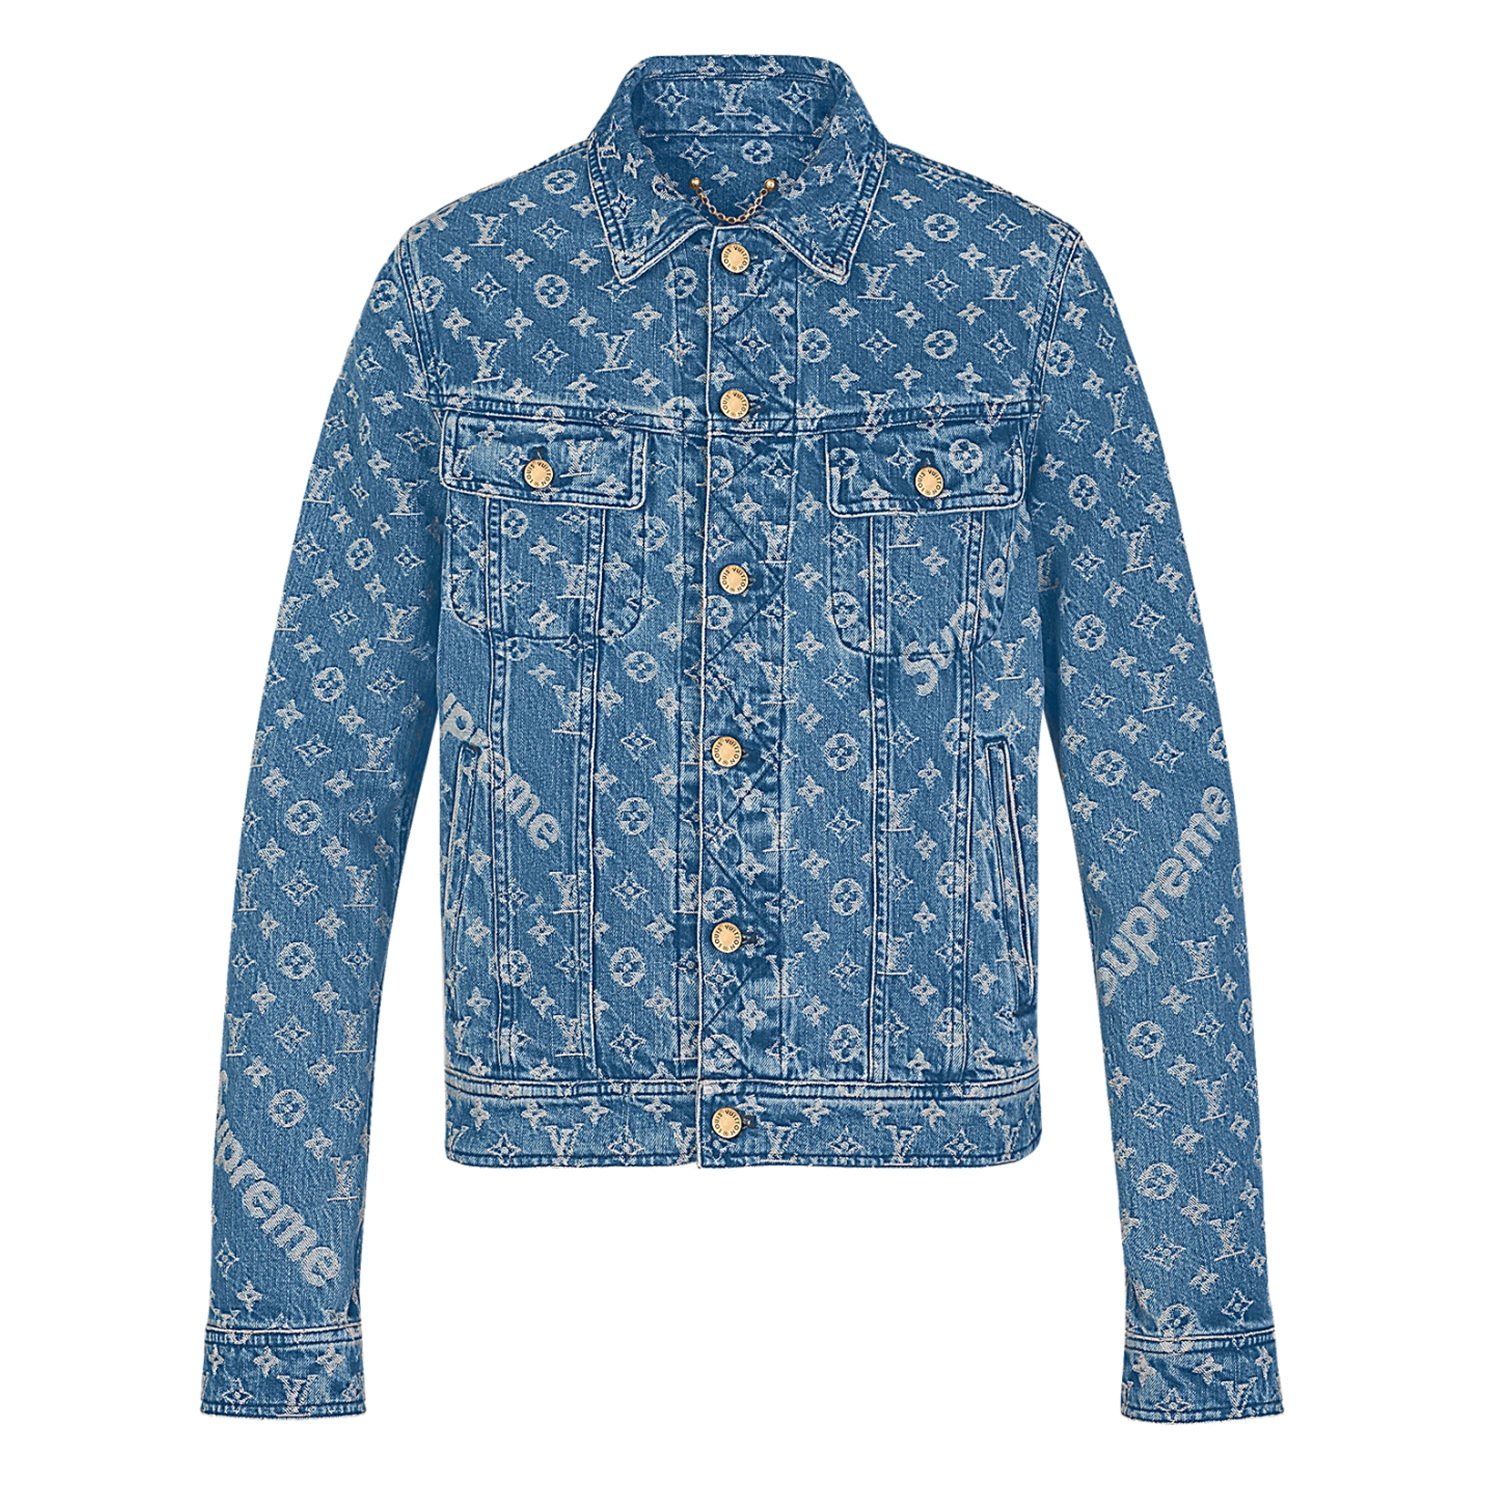 TRUCKER JACKET - €1100 $13701A3F9HMONOGRAM DENIM BLUE